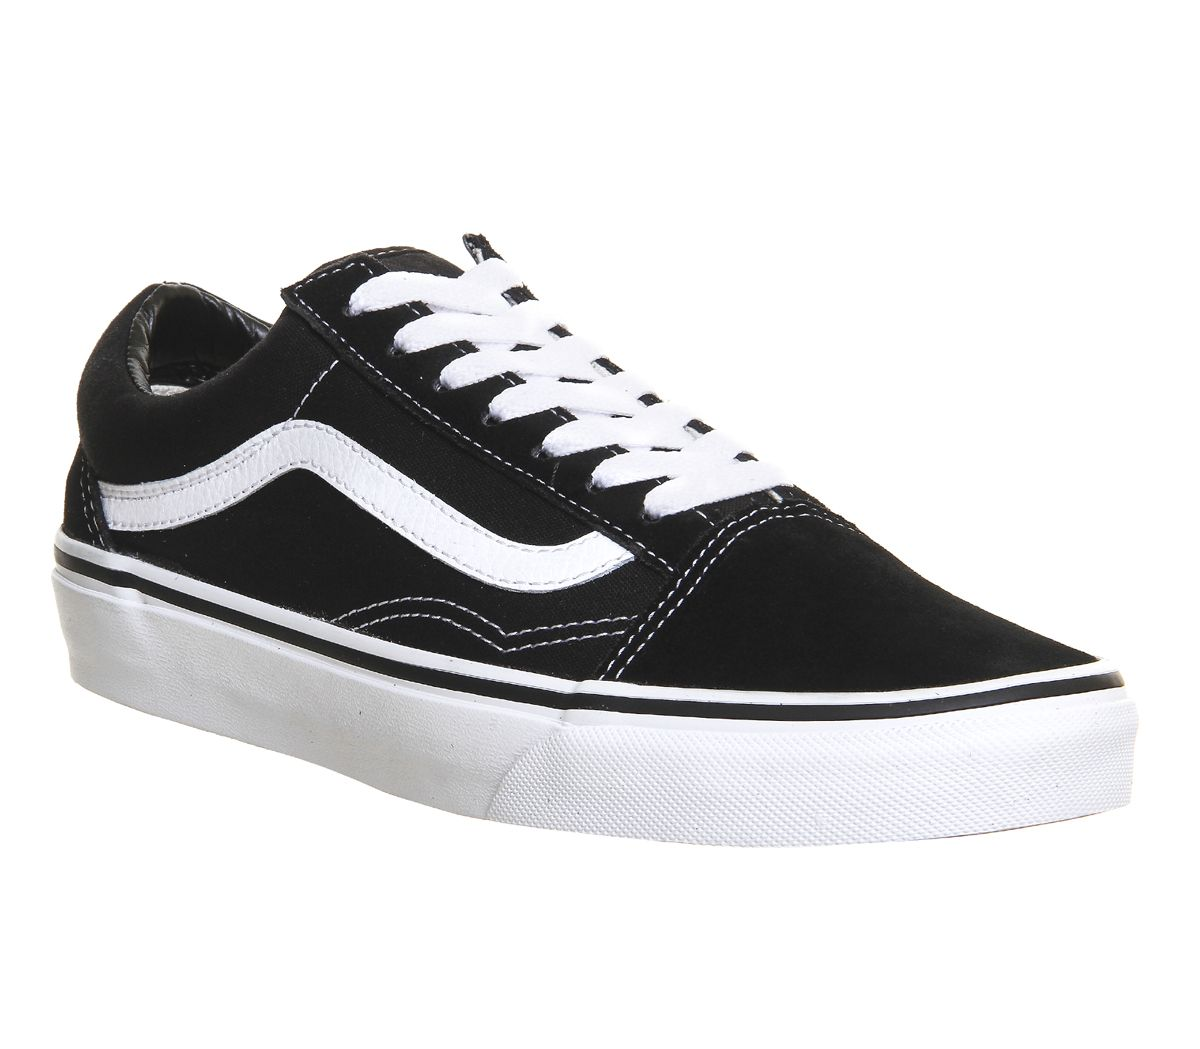 d021bd374c Vans Old Skool Trainers Black - Unisex Sports